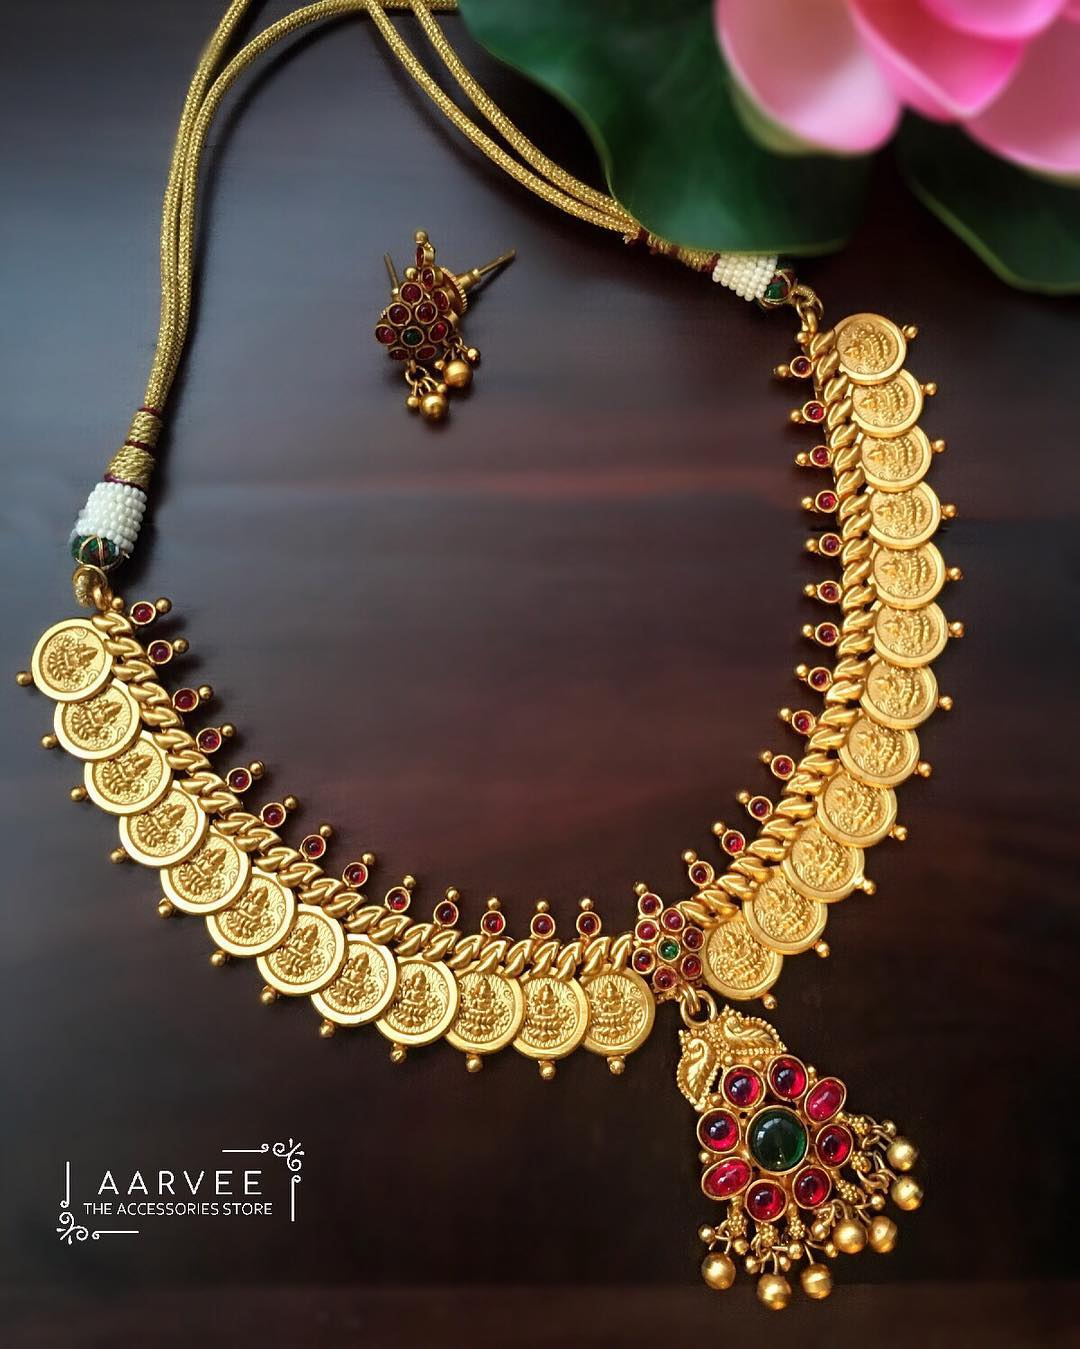 Lakshmi Coin Necklace With Kemp Pendant From Aarvee